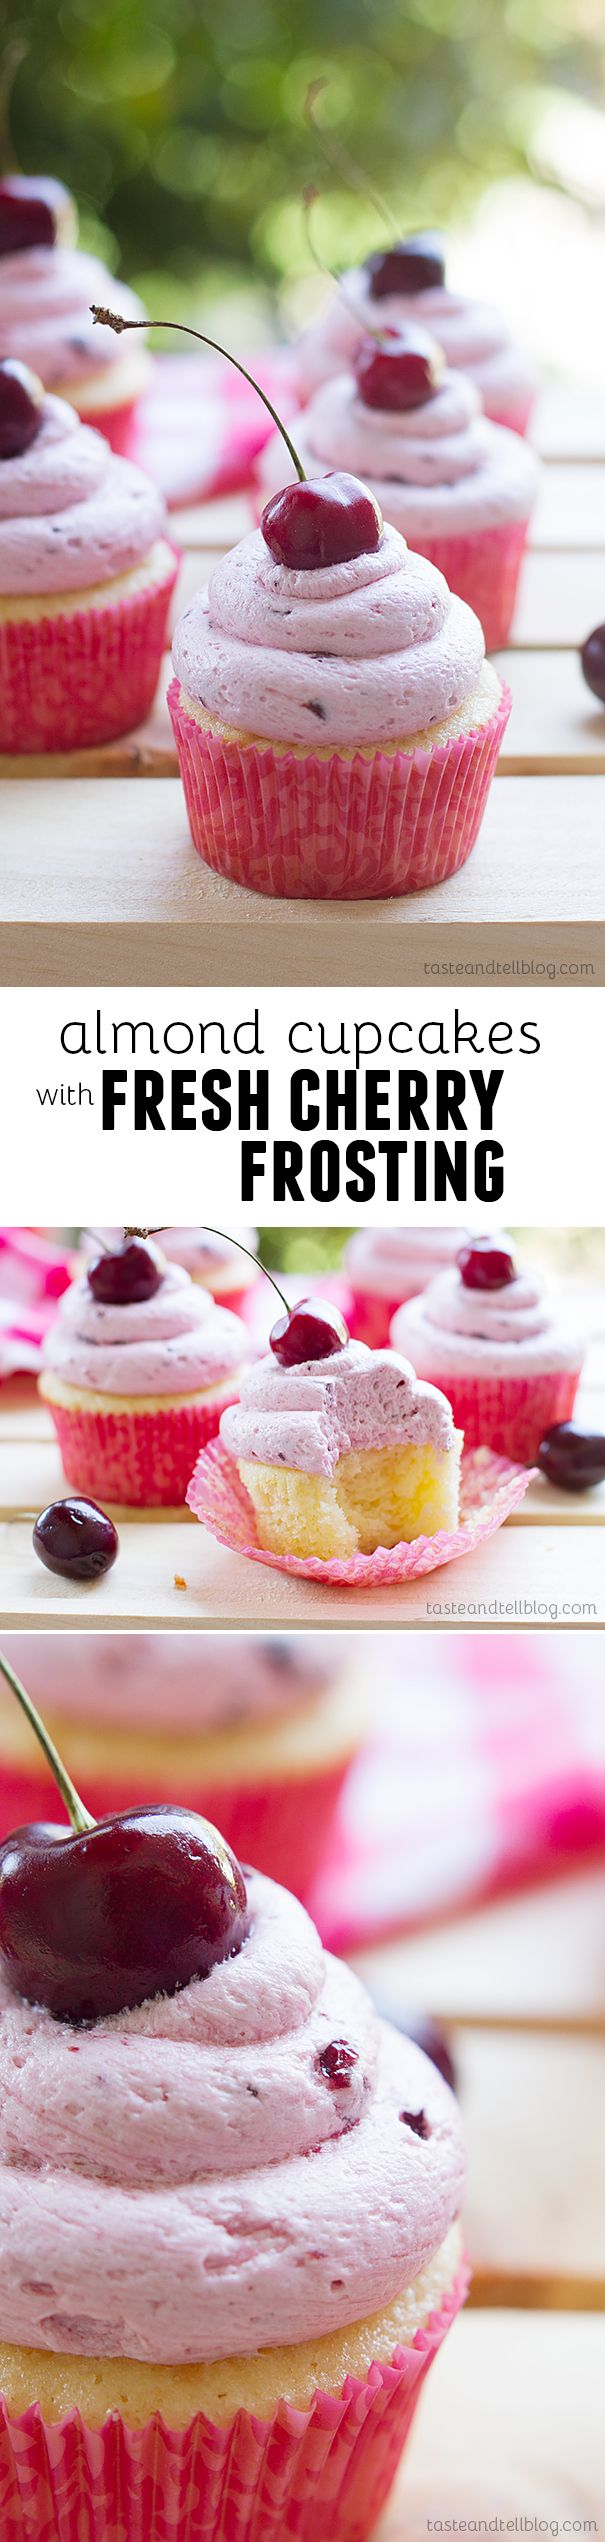 Almond Cupcakes with Fresh Cherry Frosting #bakedisbetter